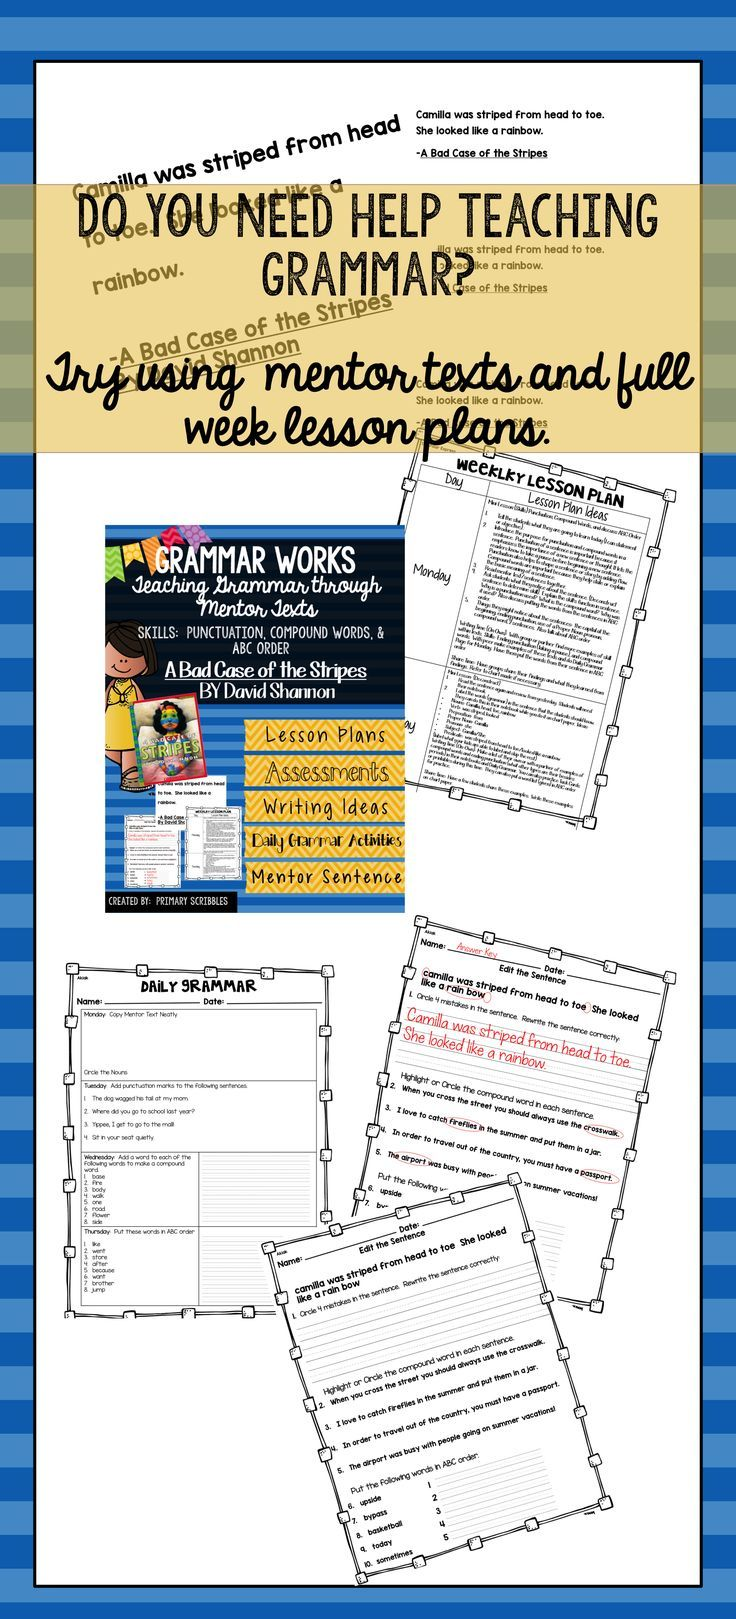 worksheet A Bad Case Of Stripes Worksheets 78 images about bad case of stripes on pinterest author studies grammar works with mentor text a the stripes